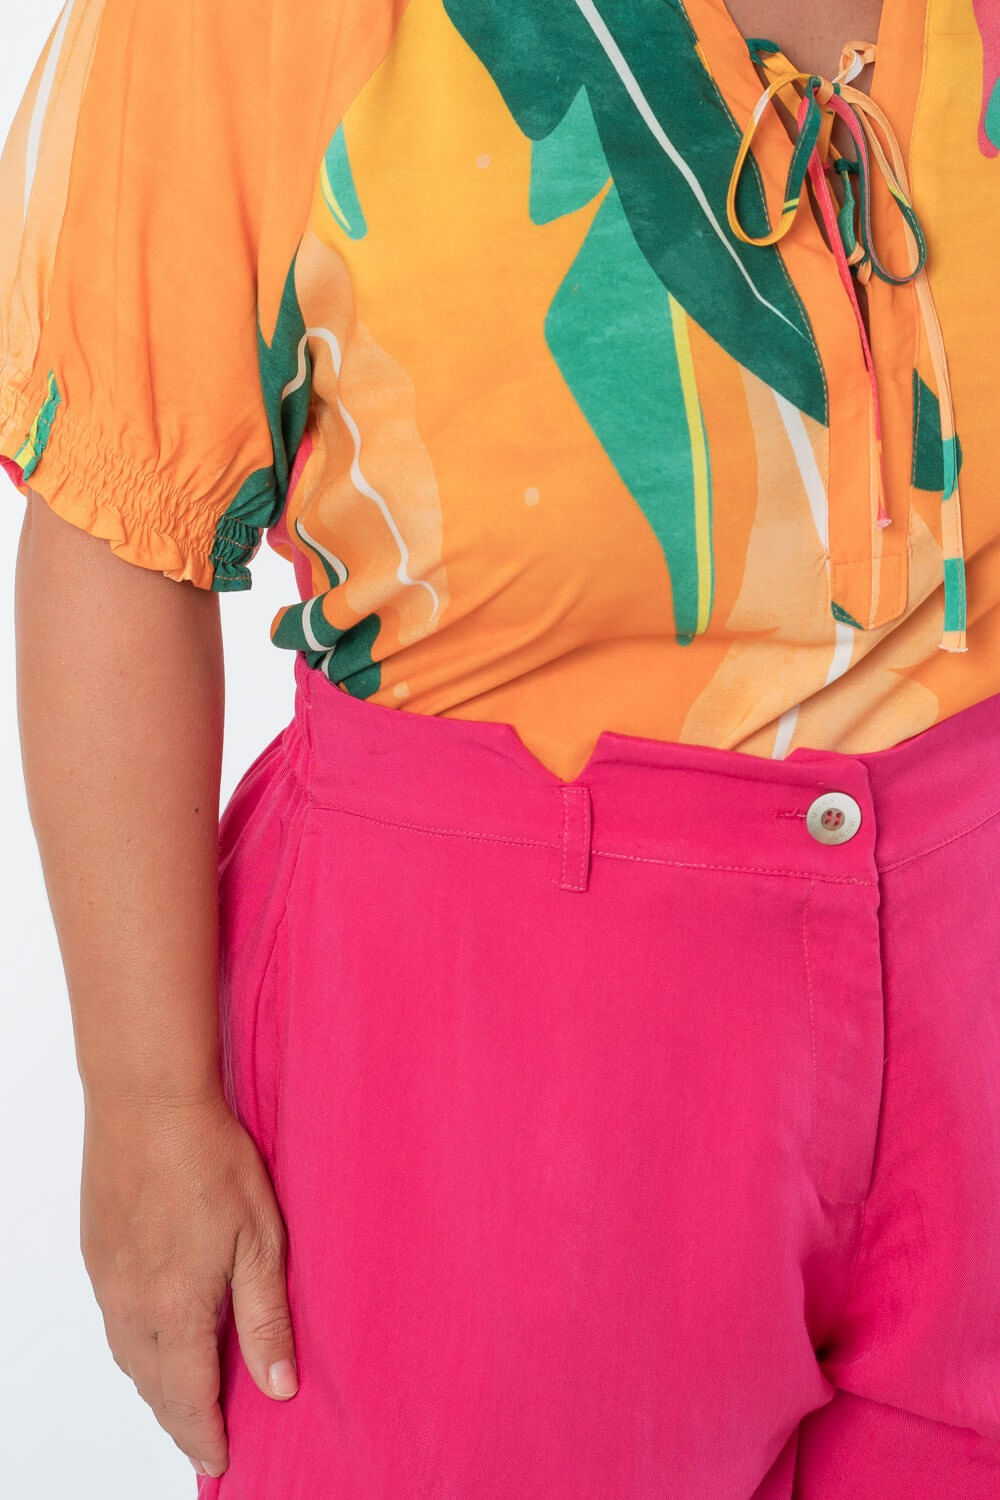 shorts_twill_plus_size_pink_23138_4_cd8a02f33a5afd586ad81d5acb05703b